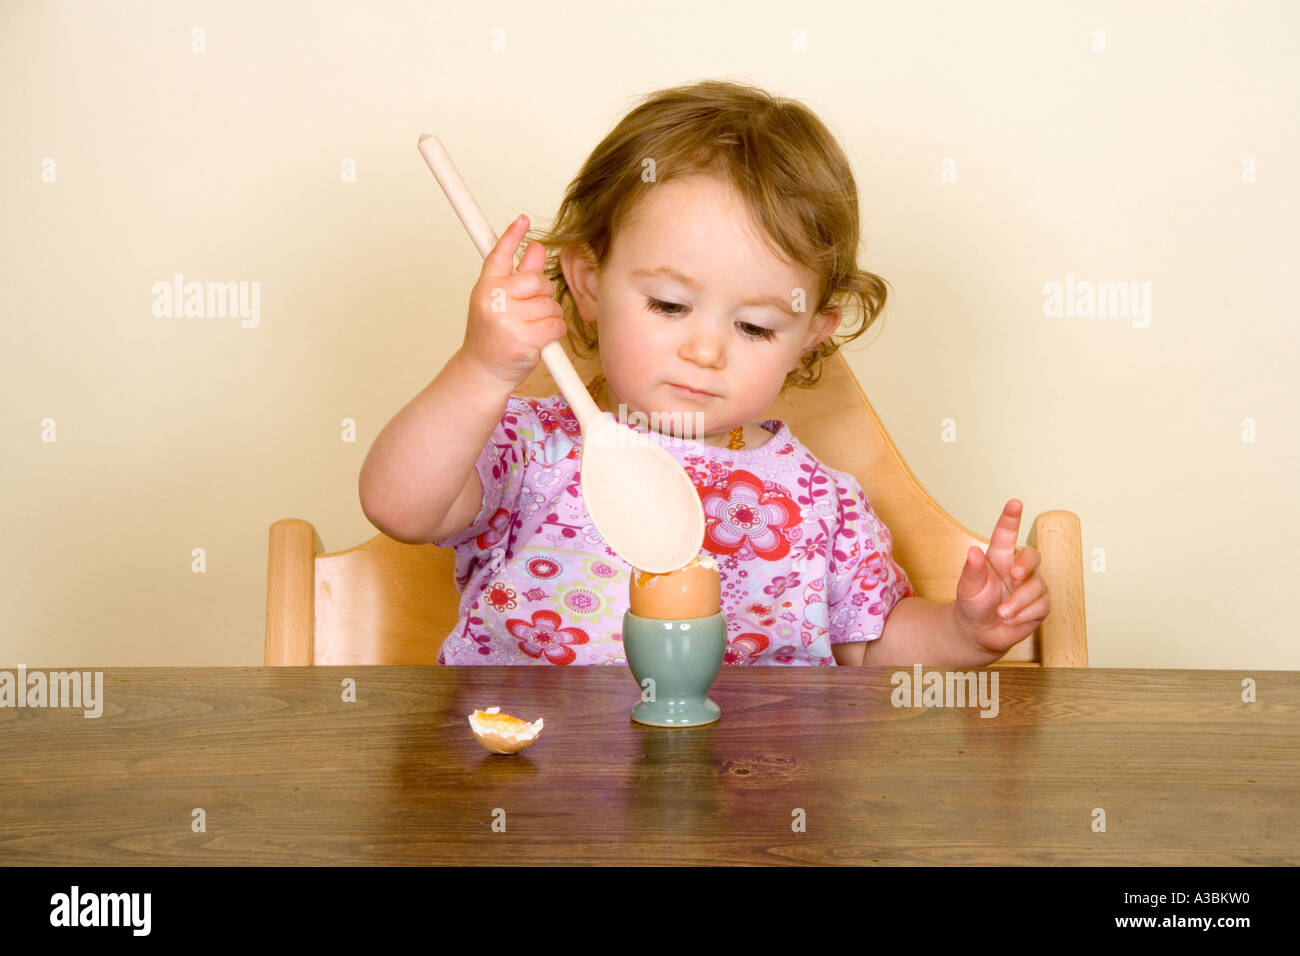 Baby Egg Chair Baby Eating Boiled Egg In High Chair Stock Photo Royalty